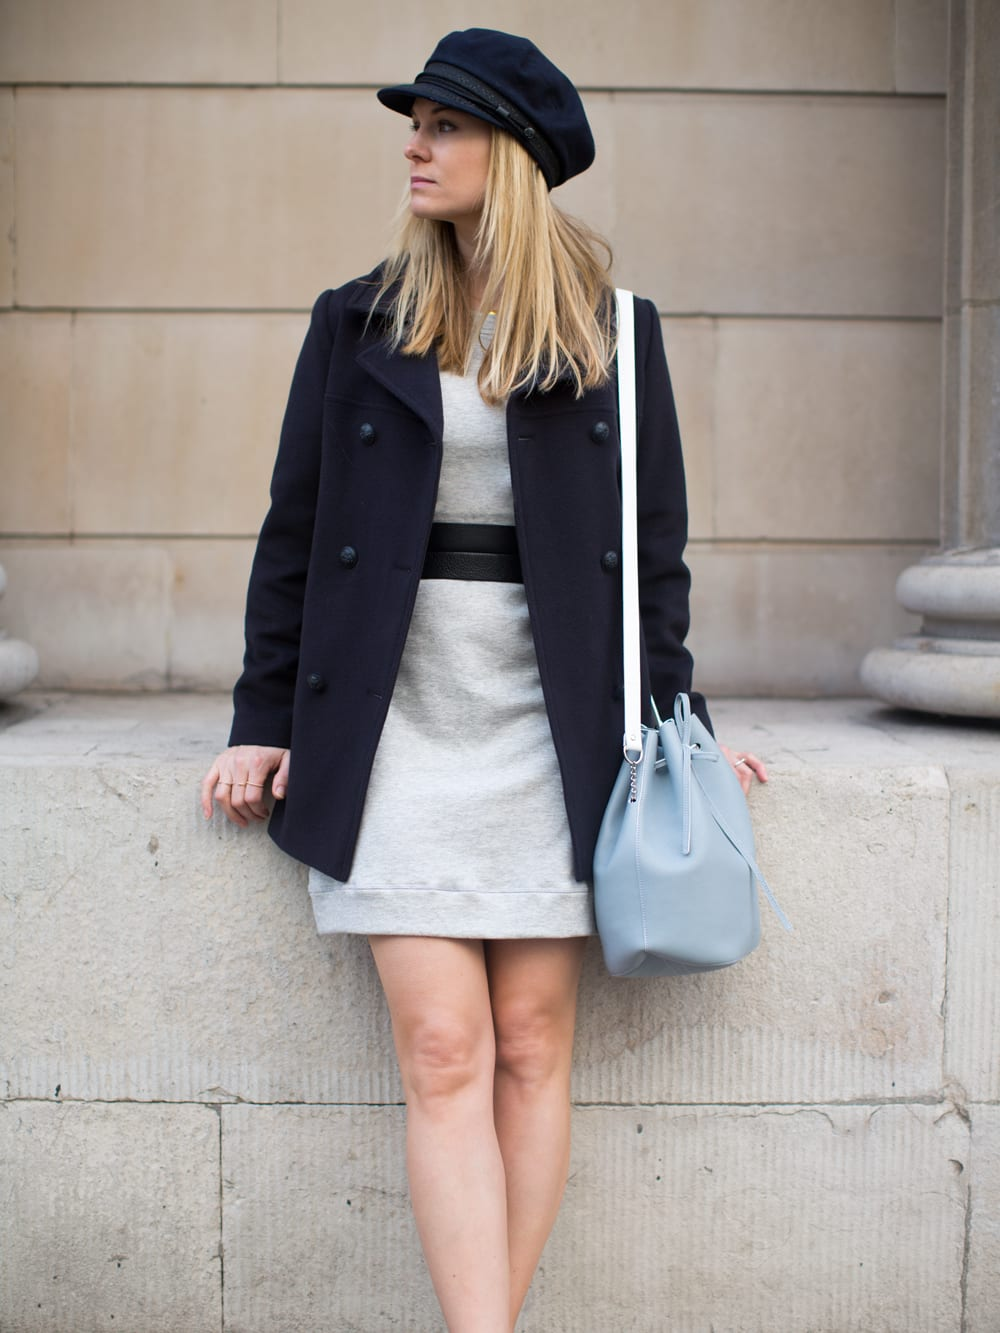 Style&Minimalism   It's Personal   Armor Lux Pea Coat, Bon Label Sweater Dress, Common Projects & Baia Bucket Bag